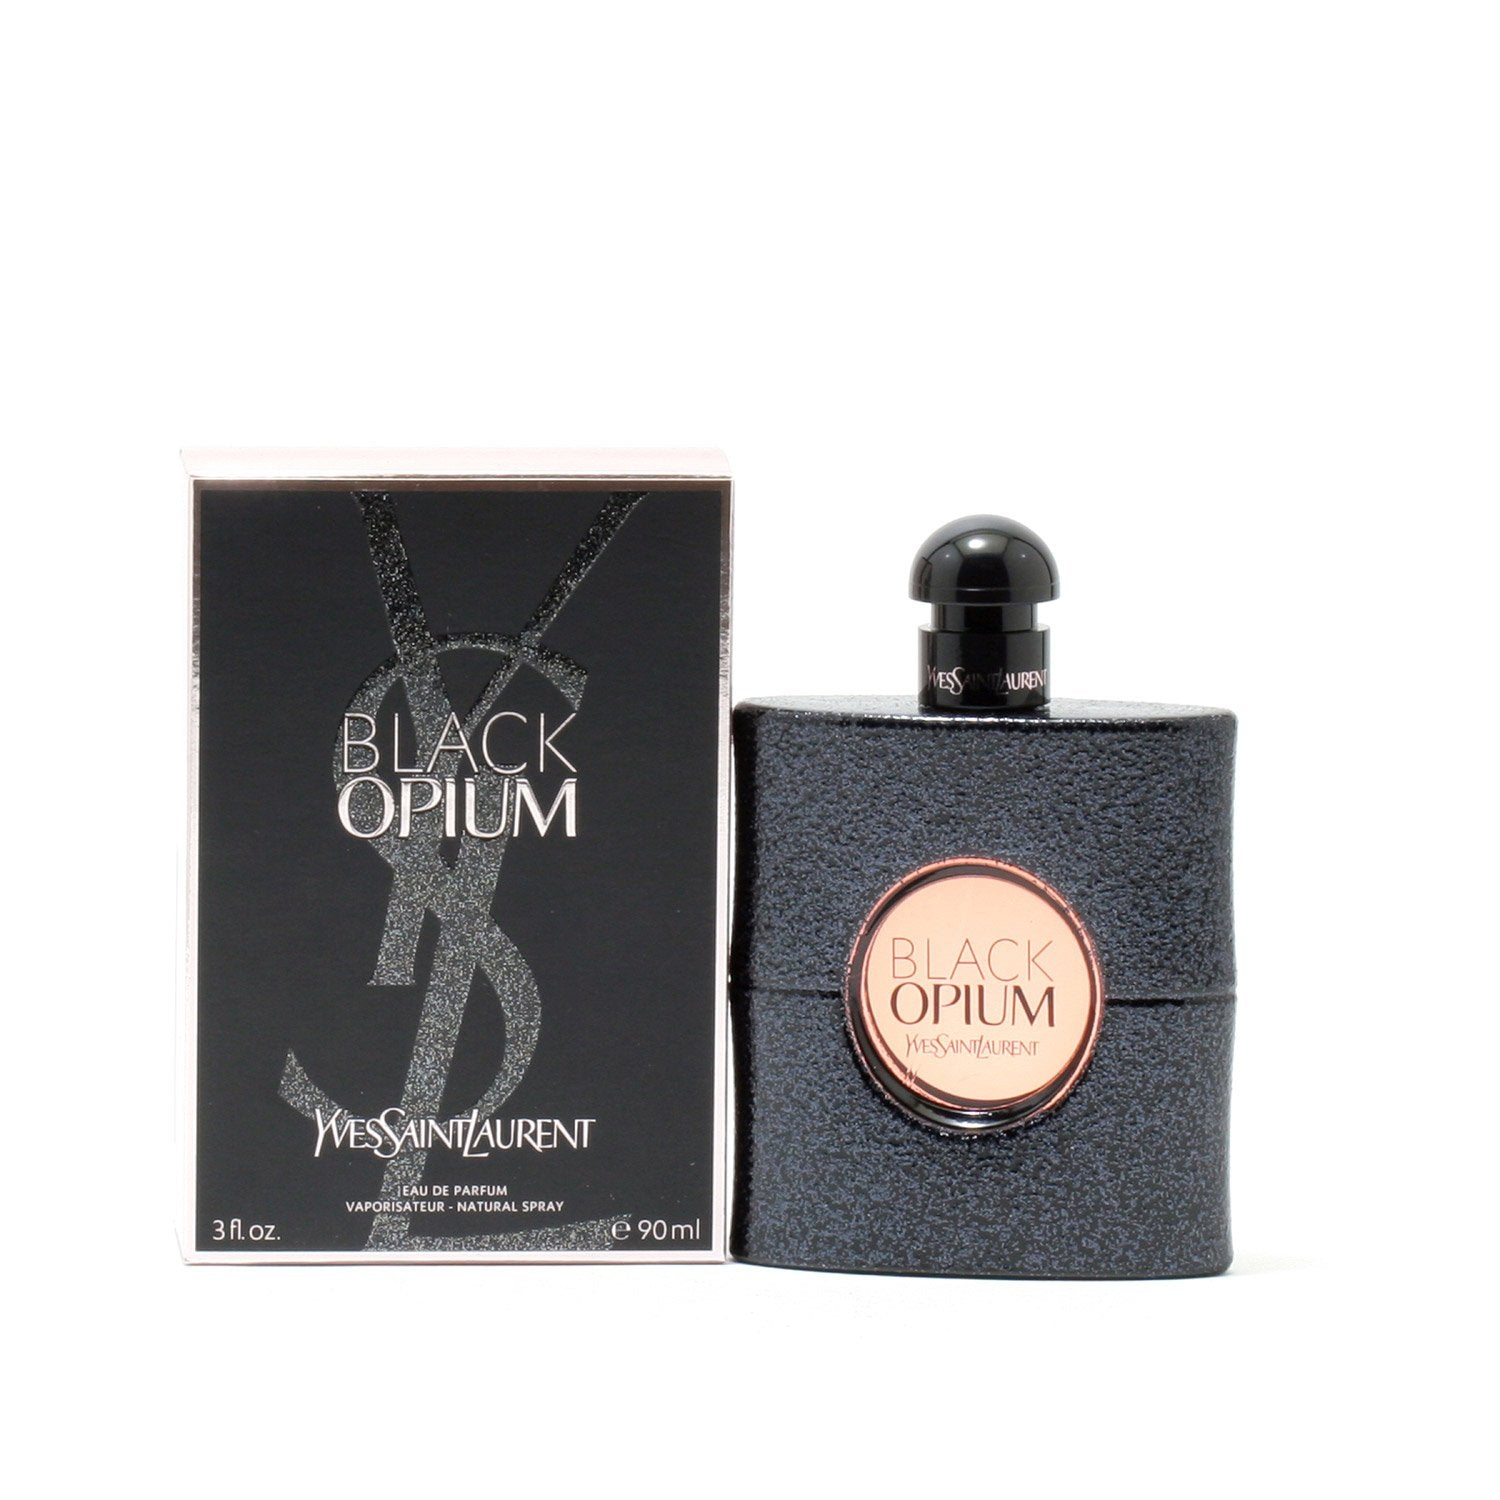 Perfume - BLACK OPIUM FOR WOMEN BY YVES SAINT LAURENT - EAU DE PARFUM SPRAY